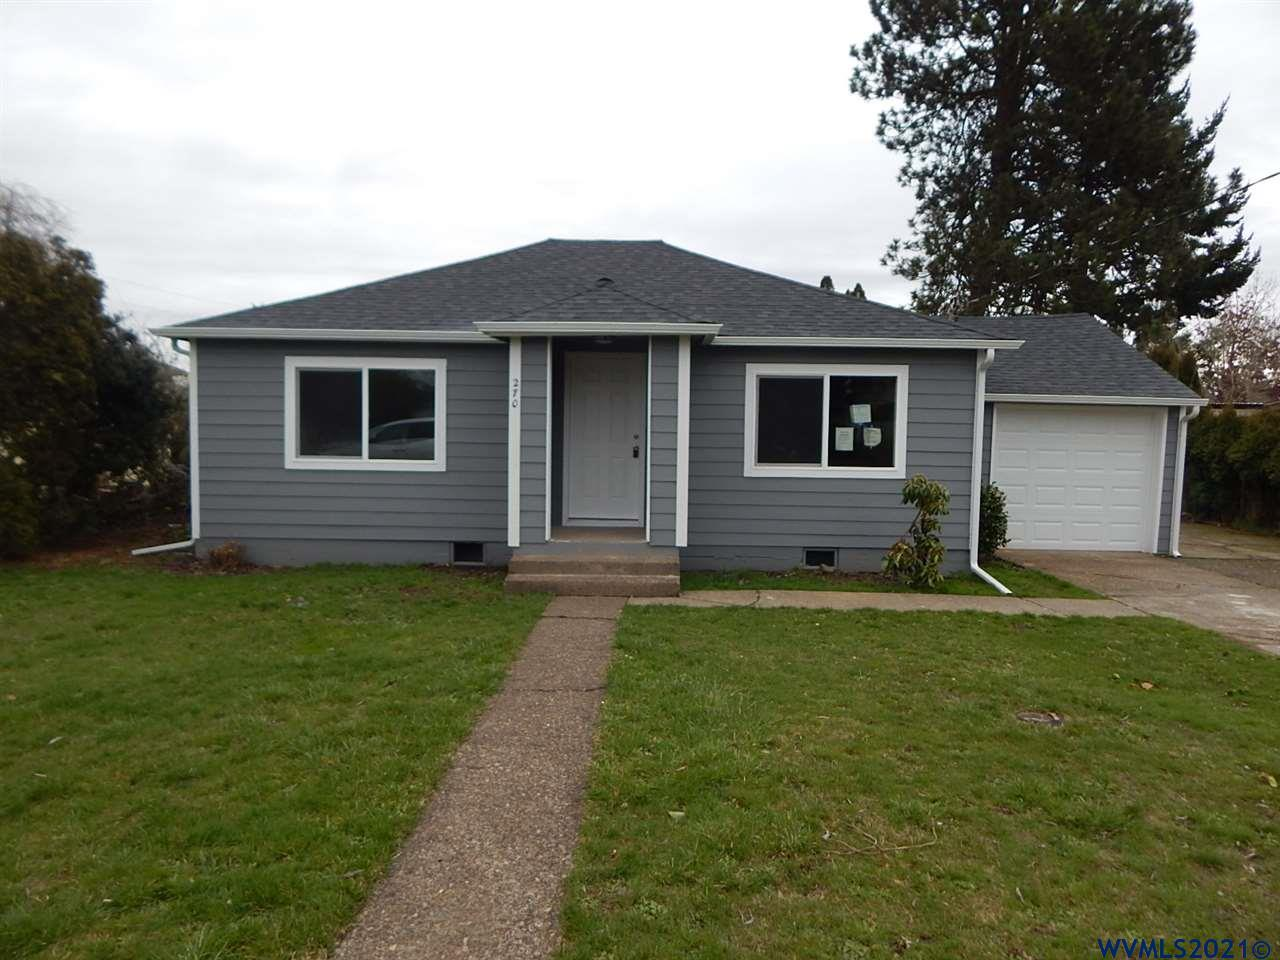 Totally renovated home is move in ready.  New kitchen, bathroom, refinished hardwood flooring, sheetrock with upgraded electrical & plumbing.  Huge fenced backyard on 170' deep lot.  RV parking area and possibly room to build a shop.  Exterior has new hardi plank siding, new roof, new windows & paint.  Low county taxes!